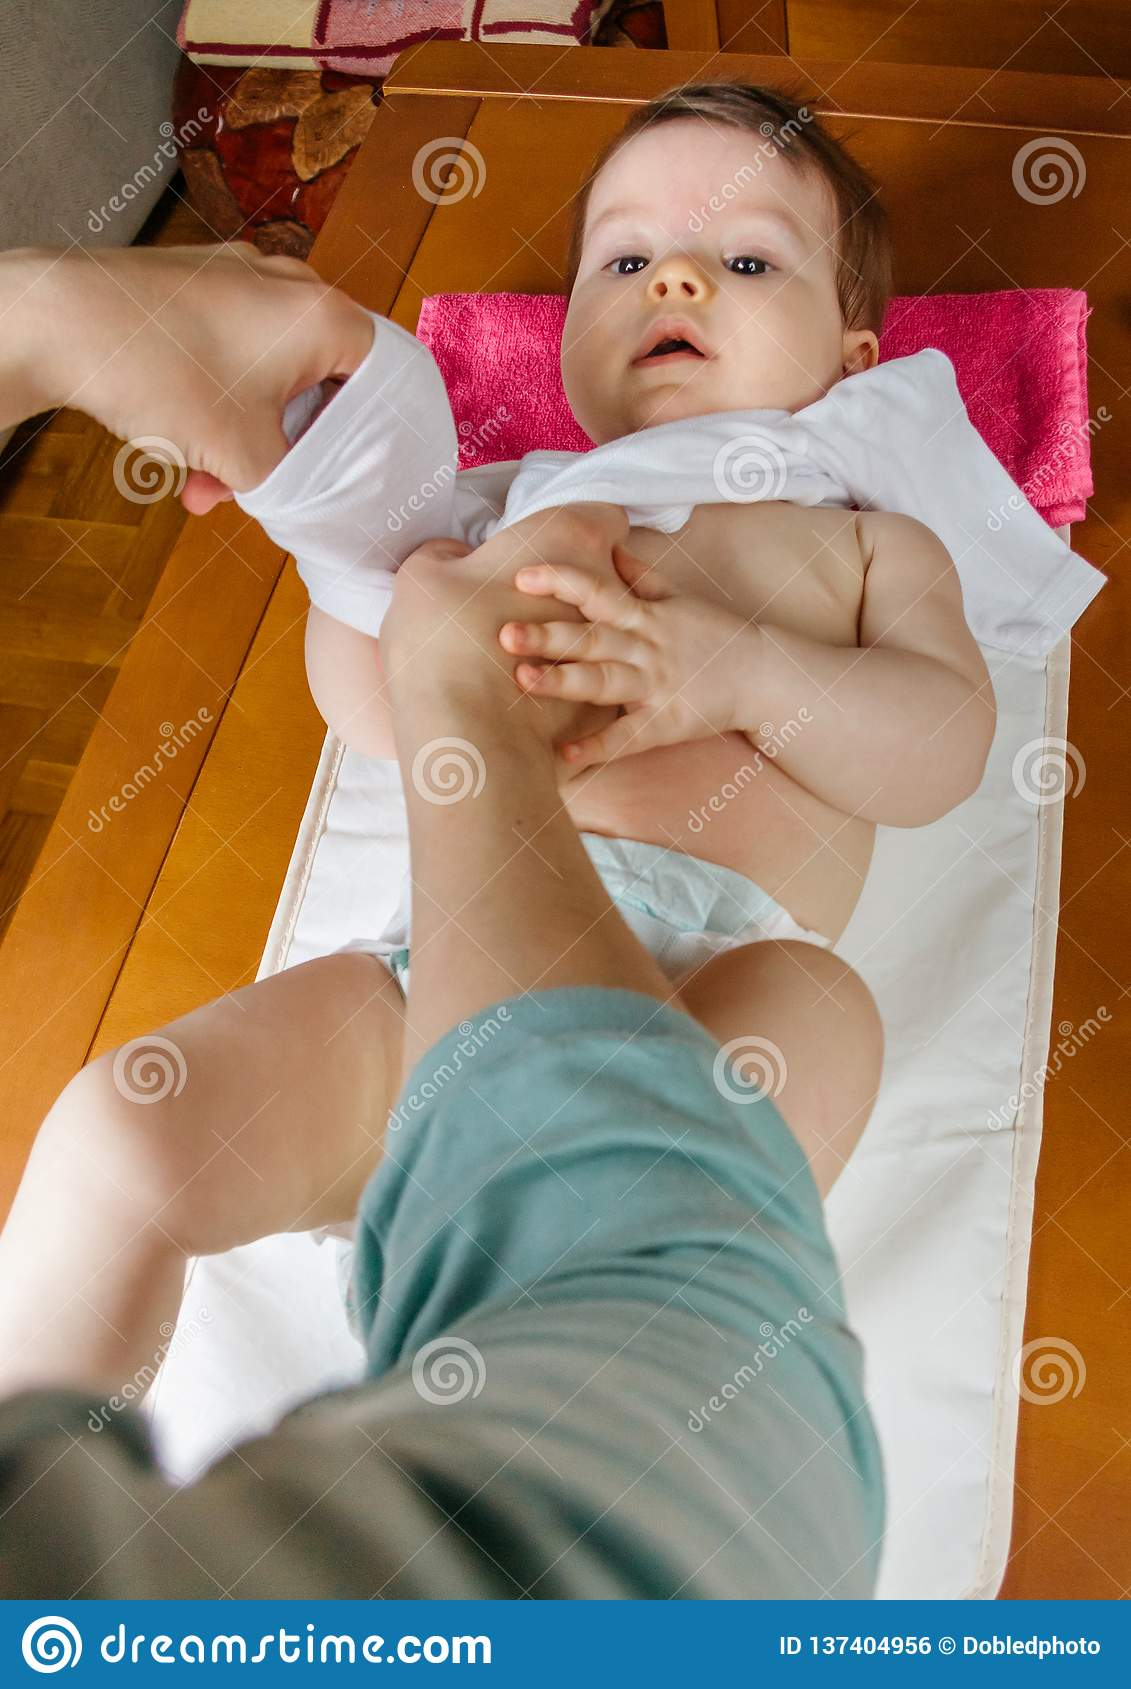 Hands of mother dressing her baby lying